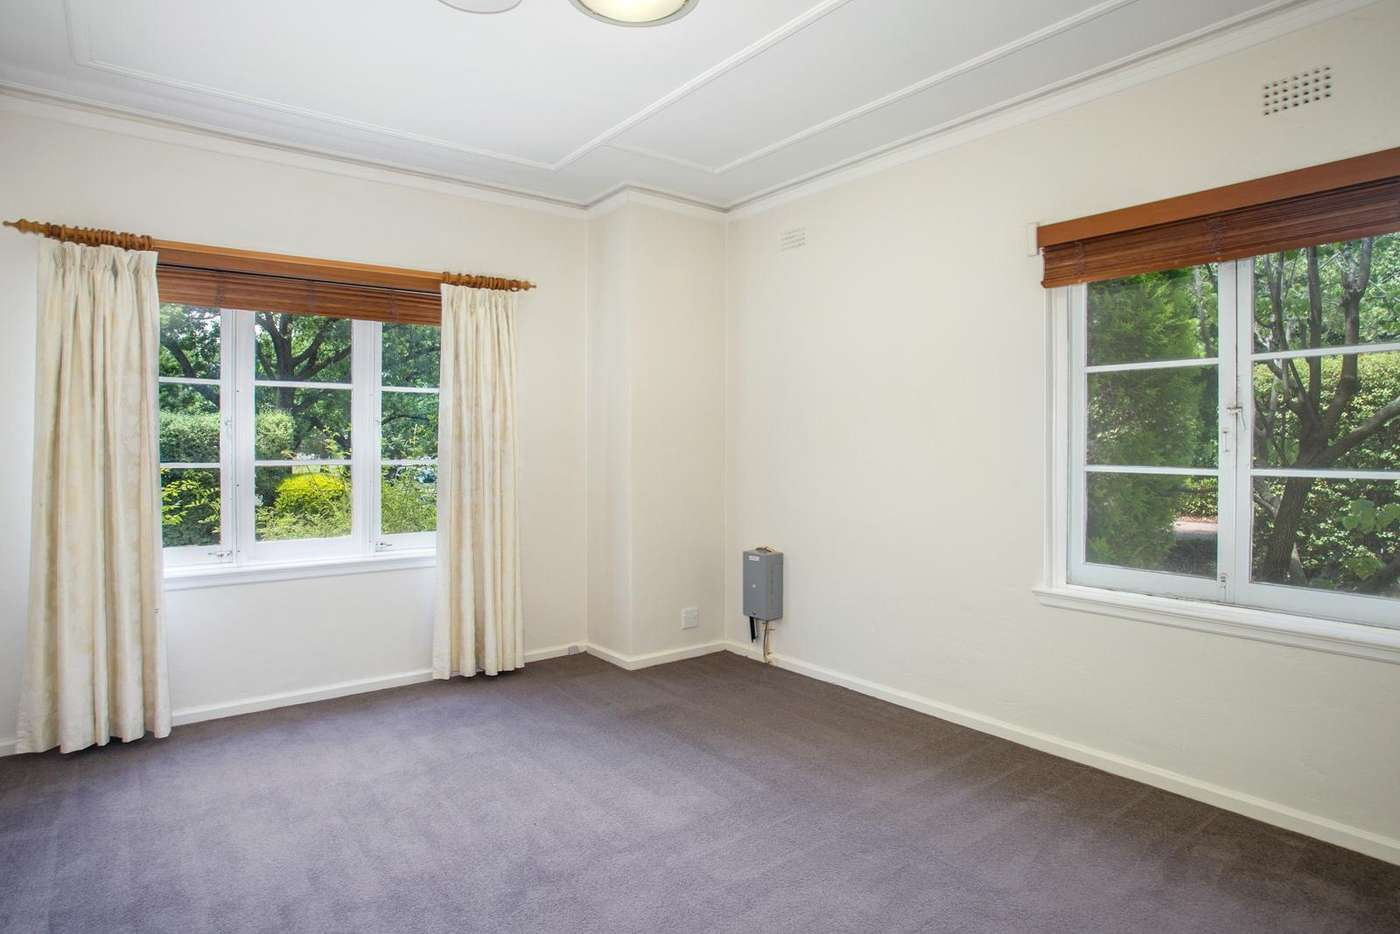 Sixth view of Homely house listing, 88 Canberra Avenue, Griffith ACT 2603